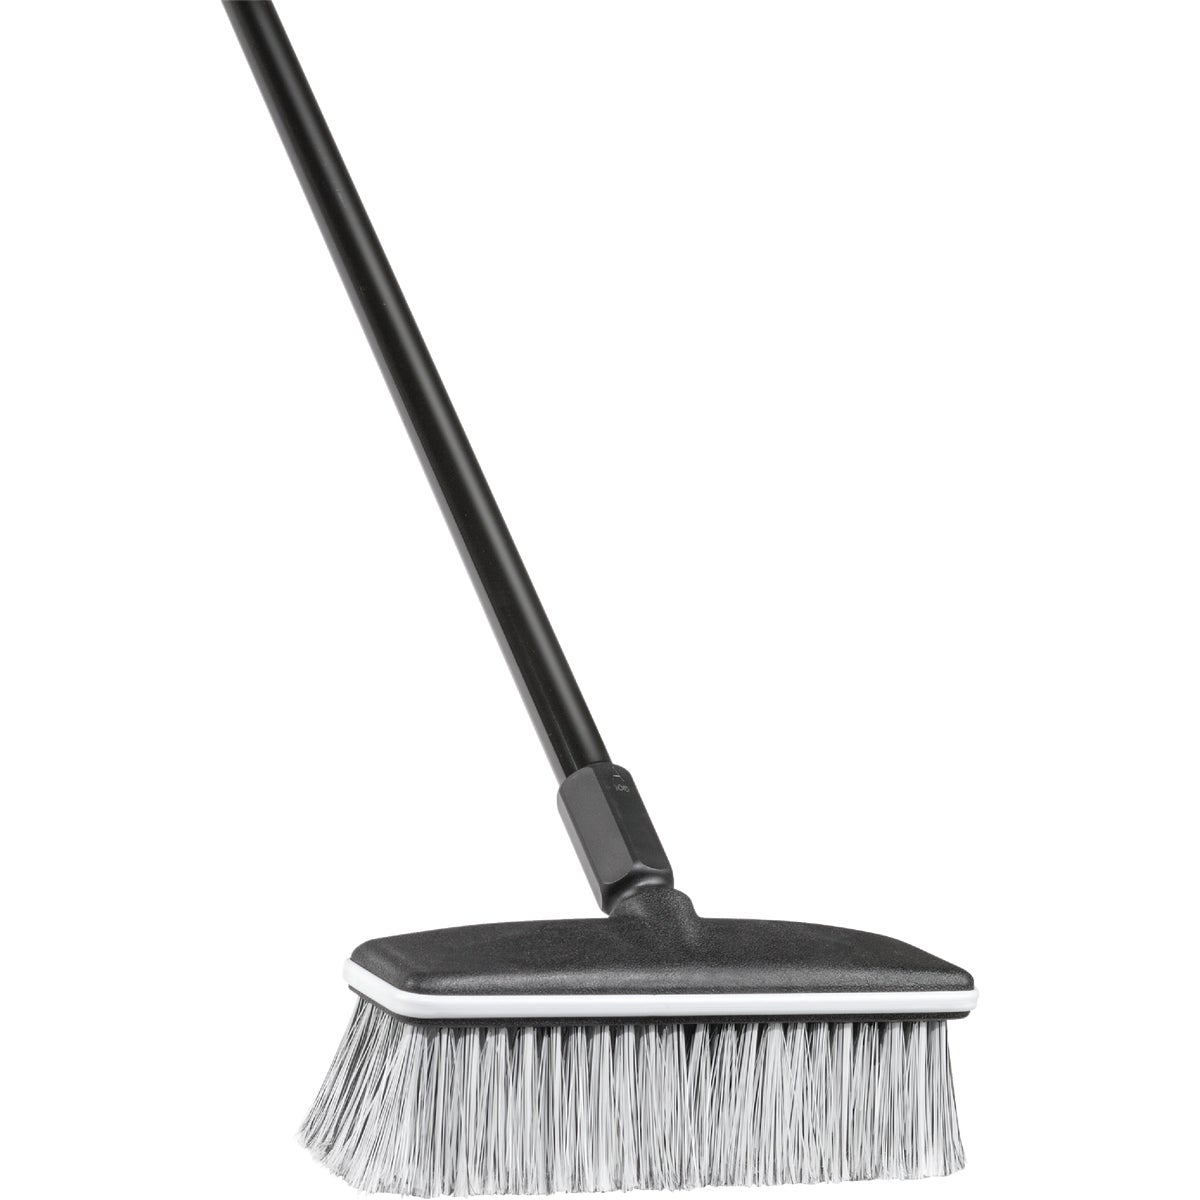 "10"" ALL PURP WASH BRUSH - 687310A by Harper Brush Incom"